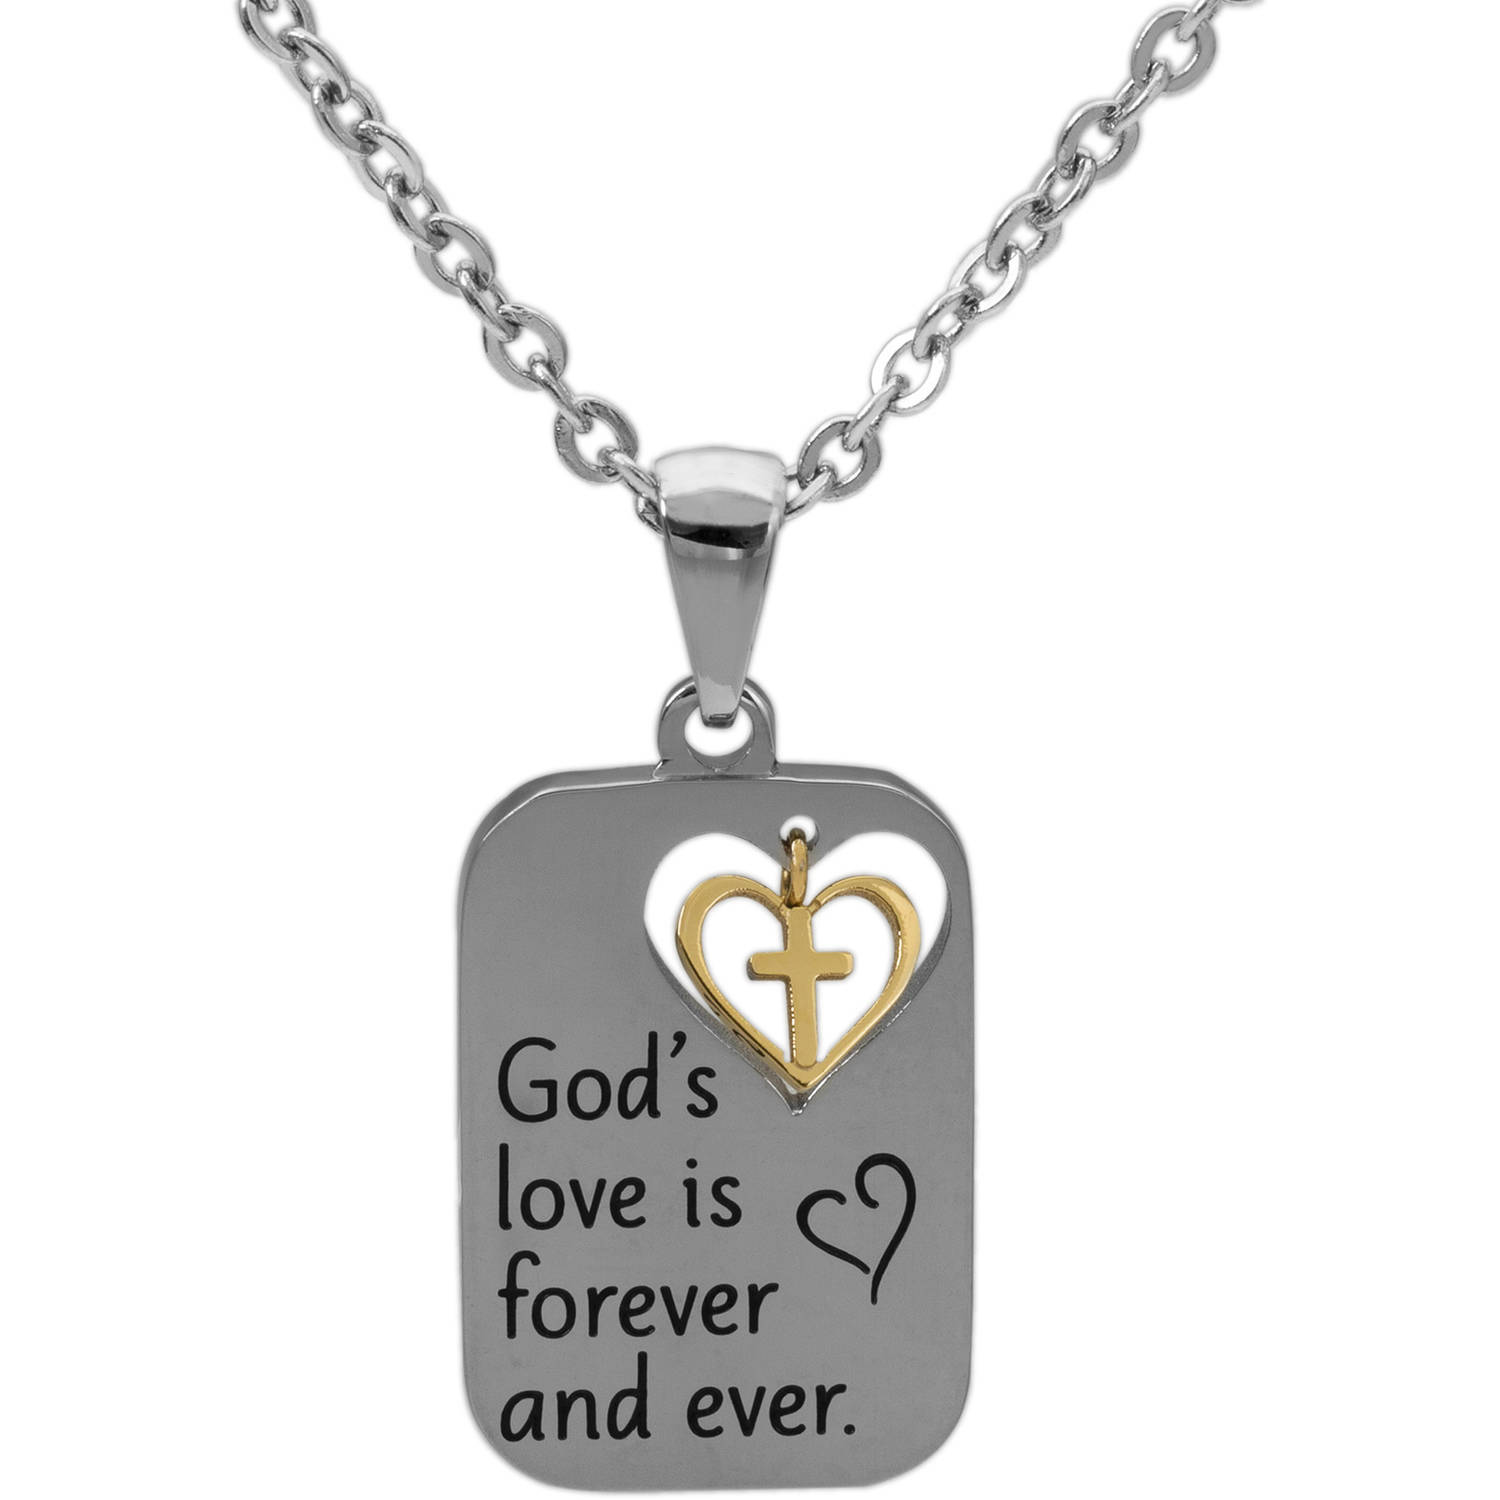 inspirational to becker god inscribed quote bb silver necklaces dog sterling accept necklace jewelry tag with grant dogtag the me pendant serenity